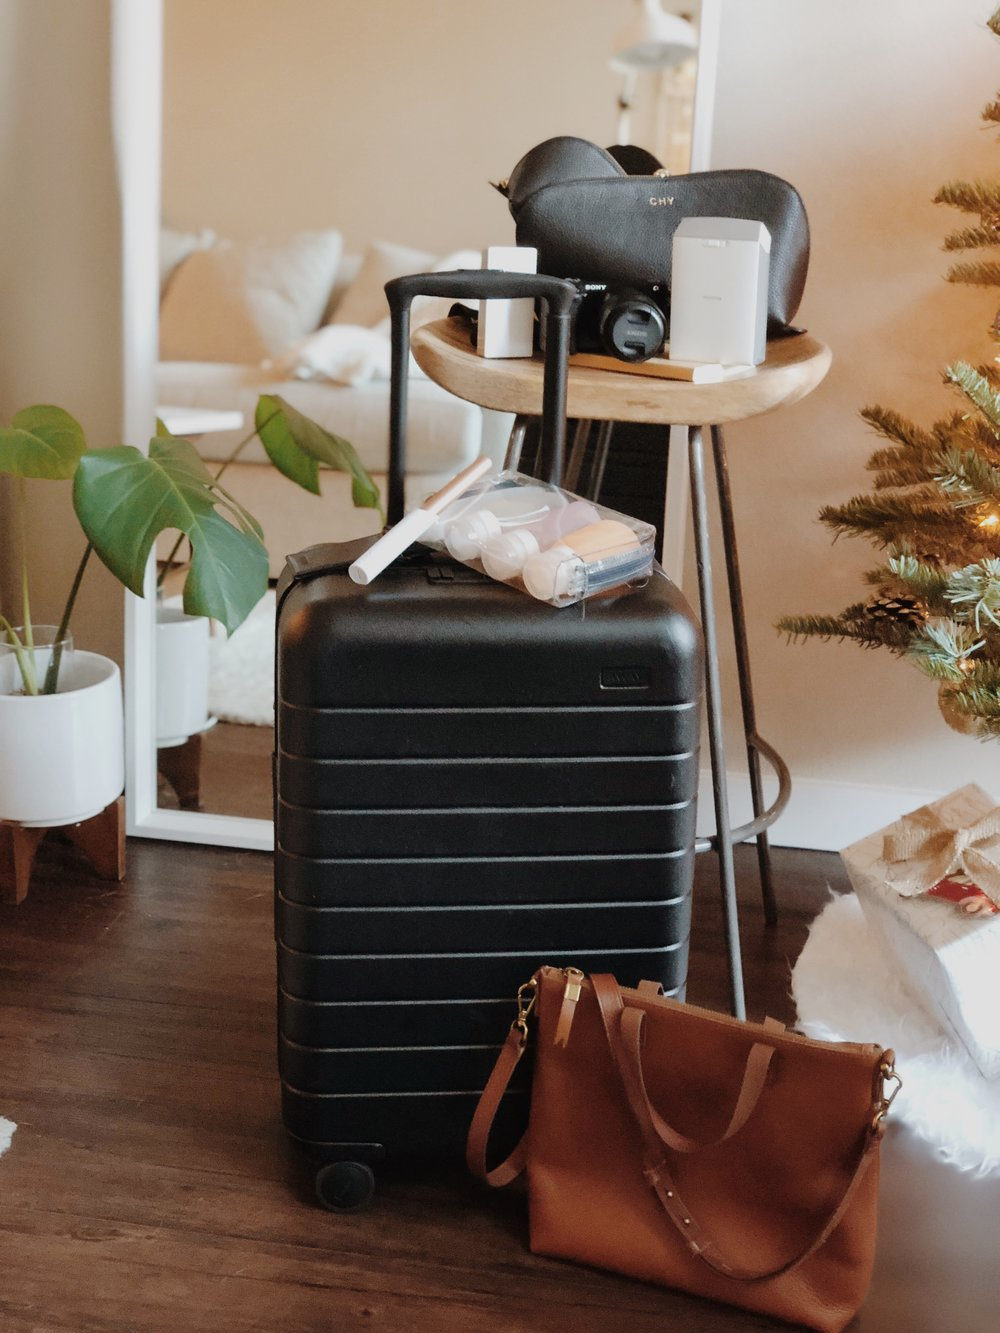 CHY Gift Guide Traveler Gifts - Away Luggage, Madewell, Cuyana, Sony, Fujifilm